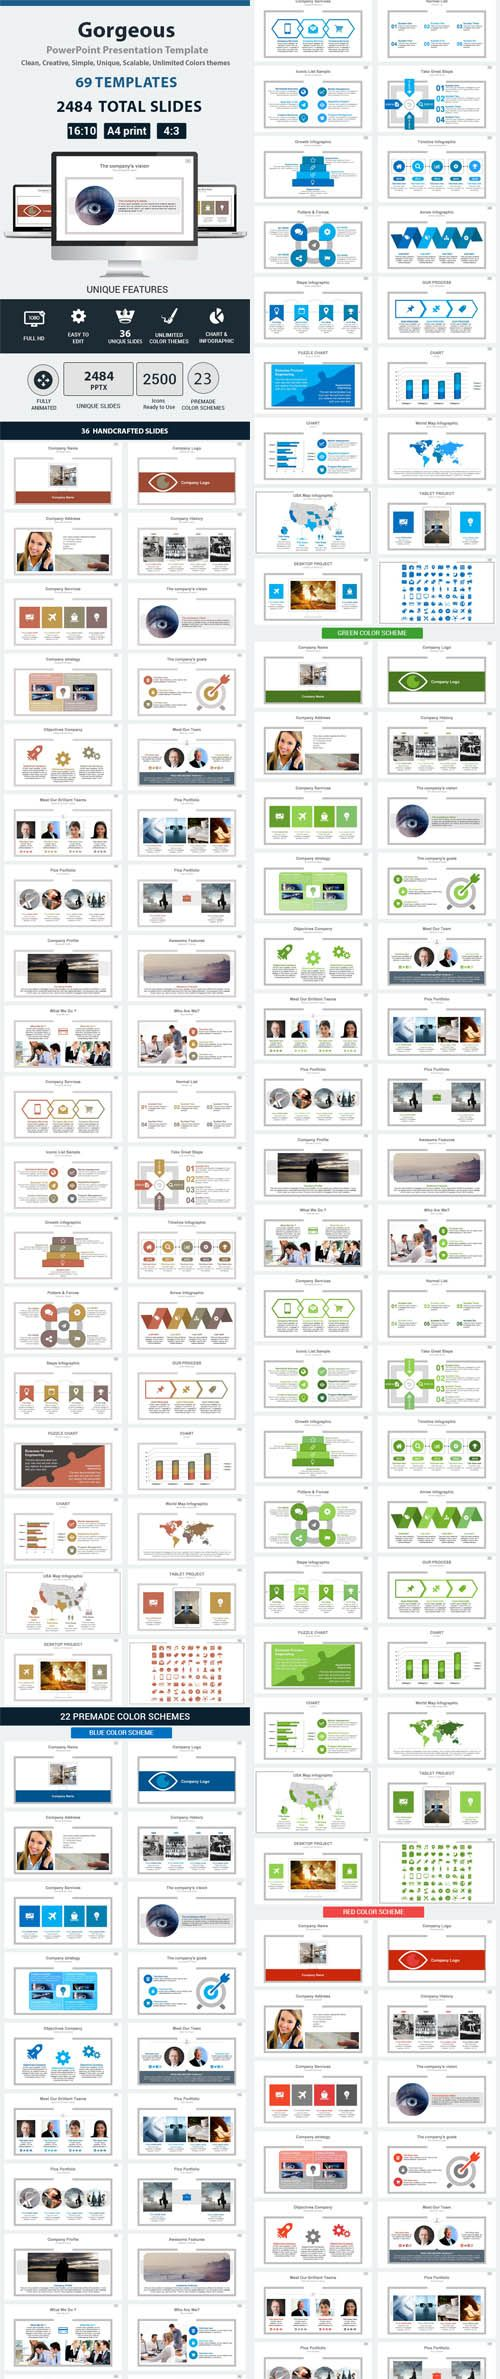 free graphicriver templates download – quantumgaming.co, Graphicriver Folio Powerpoint Presentation Template, Presentation templates